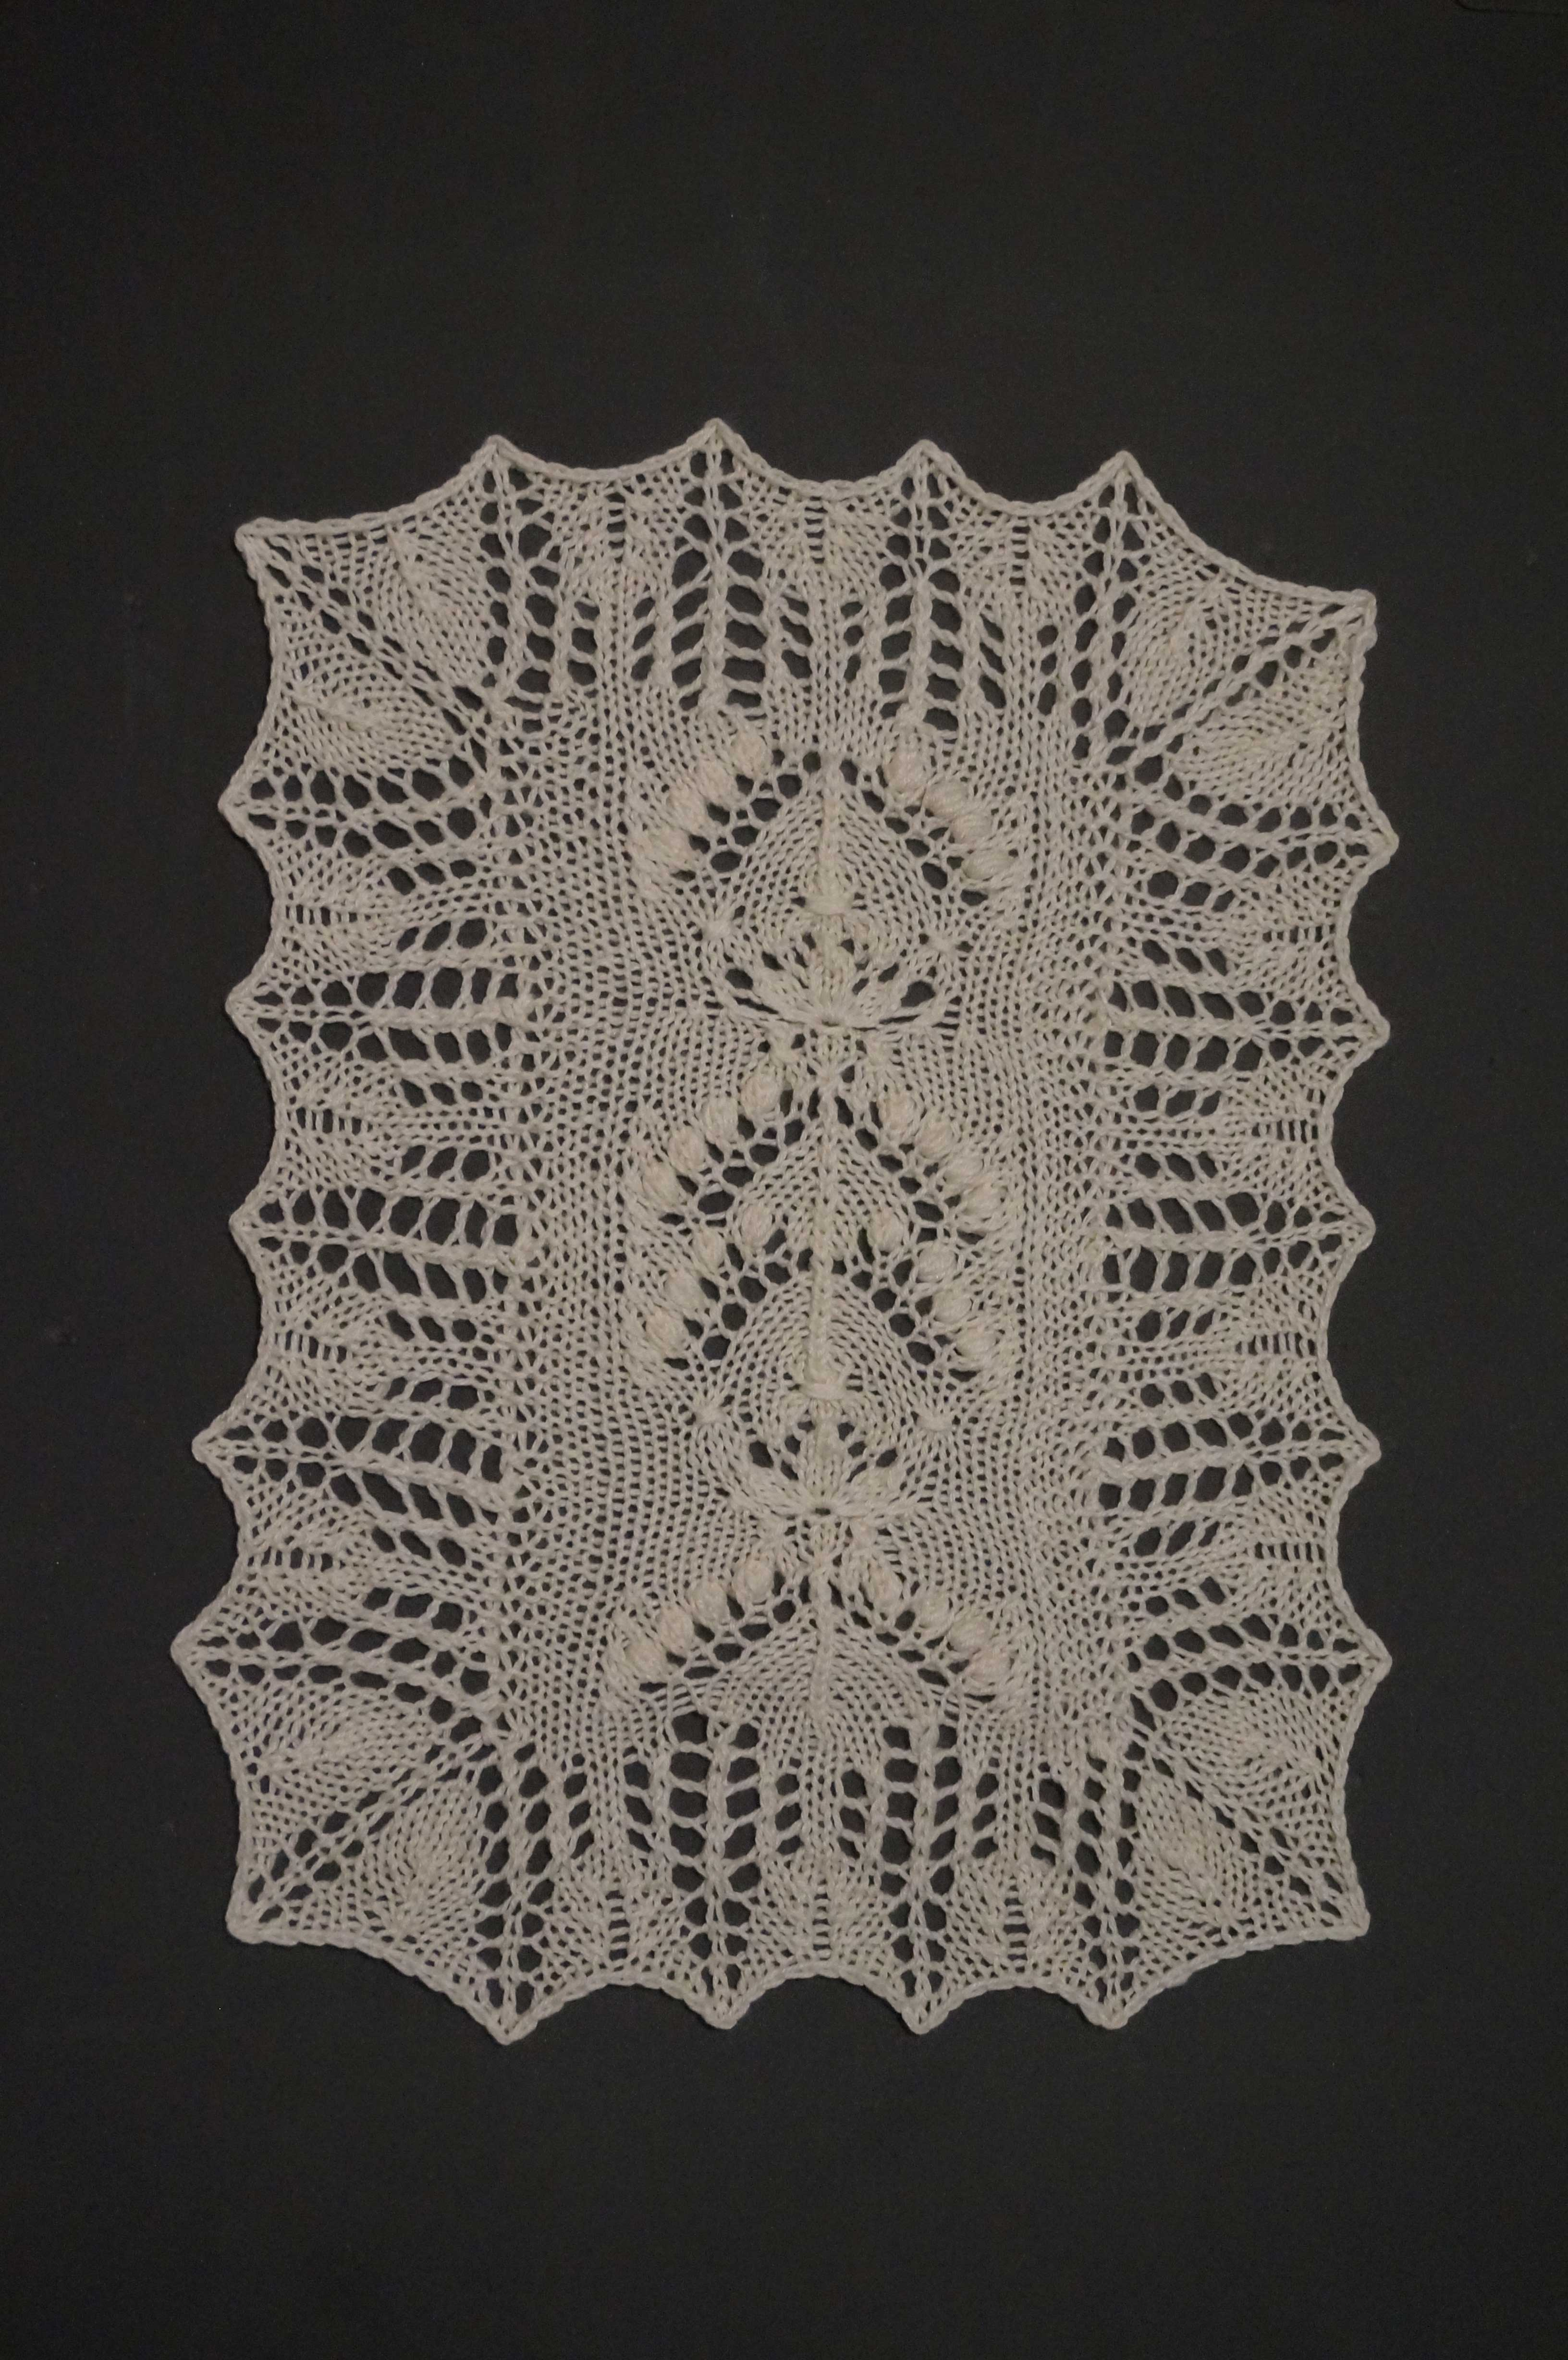 Estonian Decorative Stitches - SOLD OUT